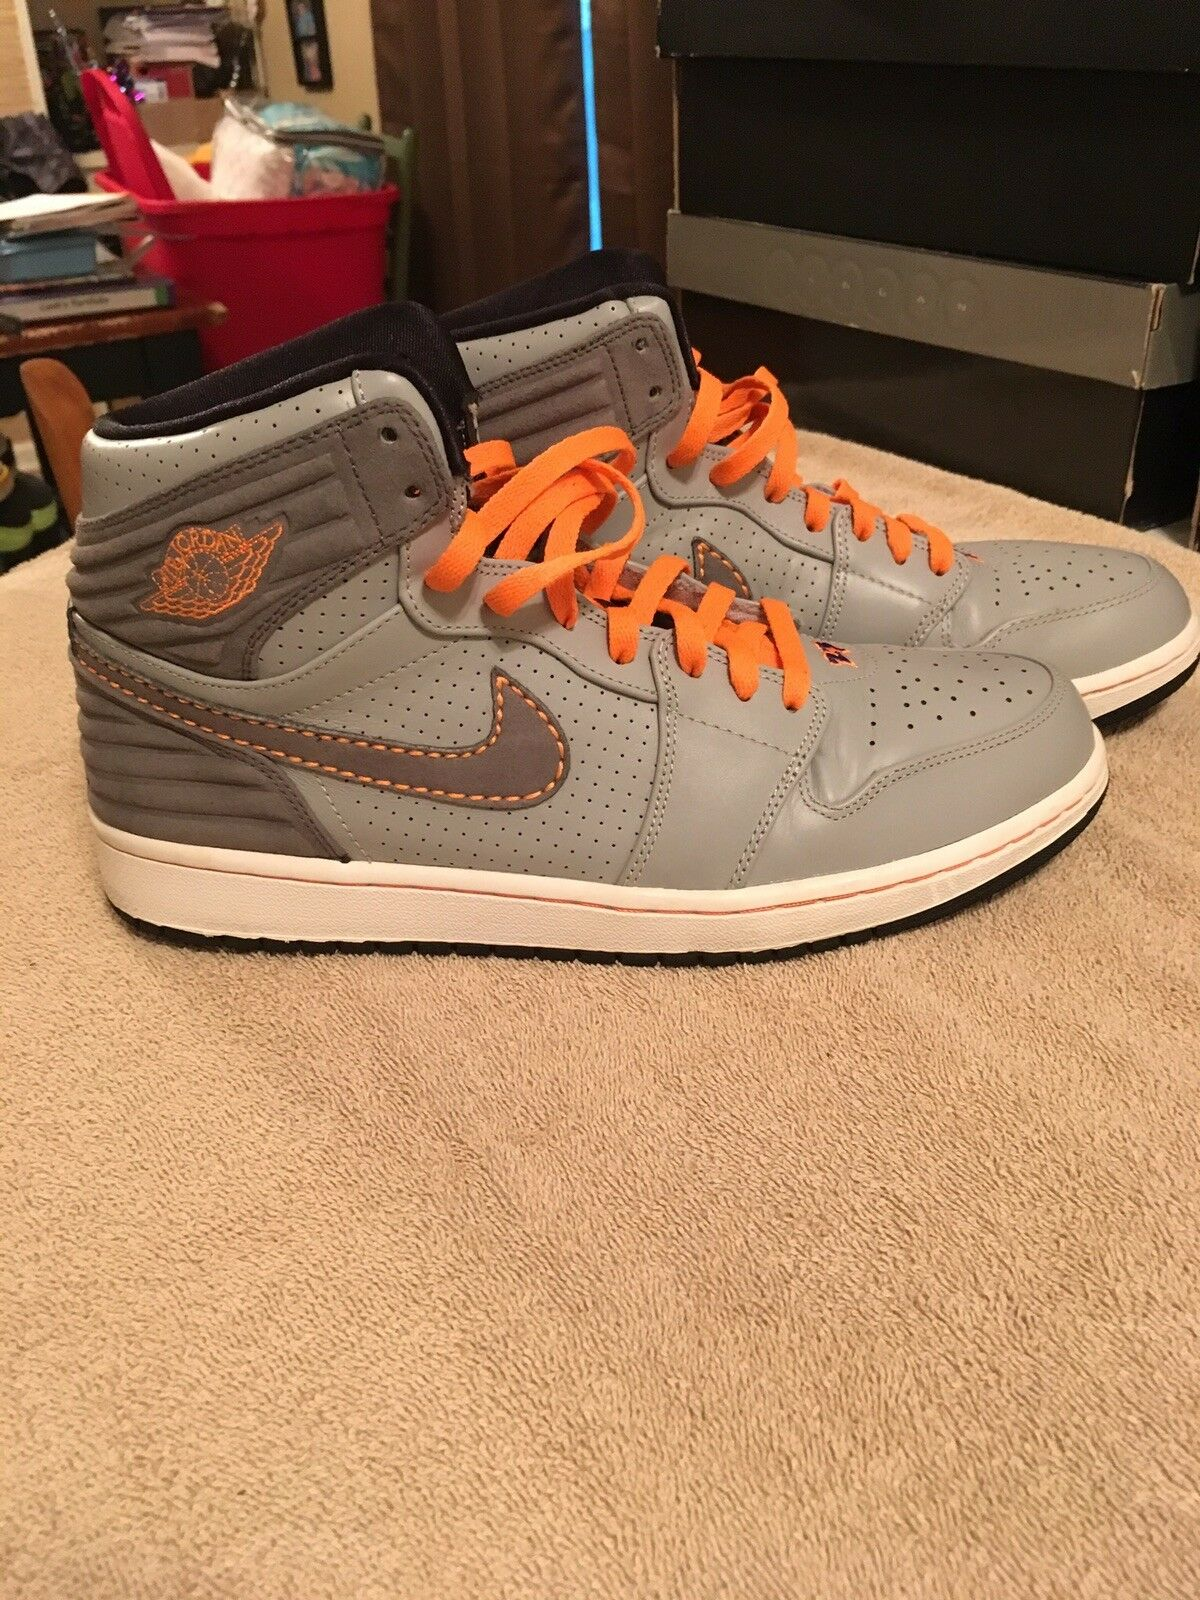 Air Jordan 1 Size 12 Gently Used VNDS